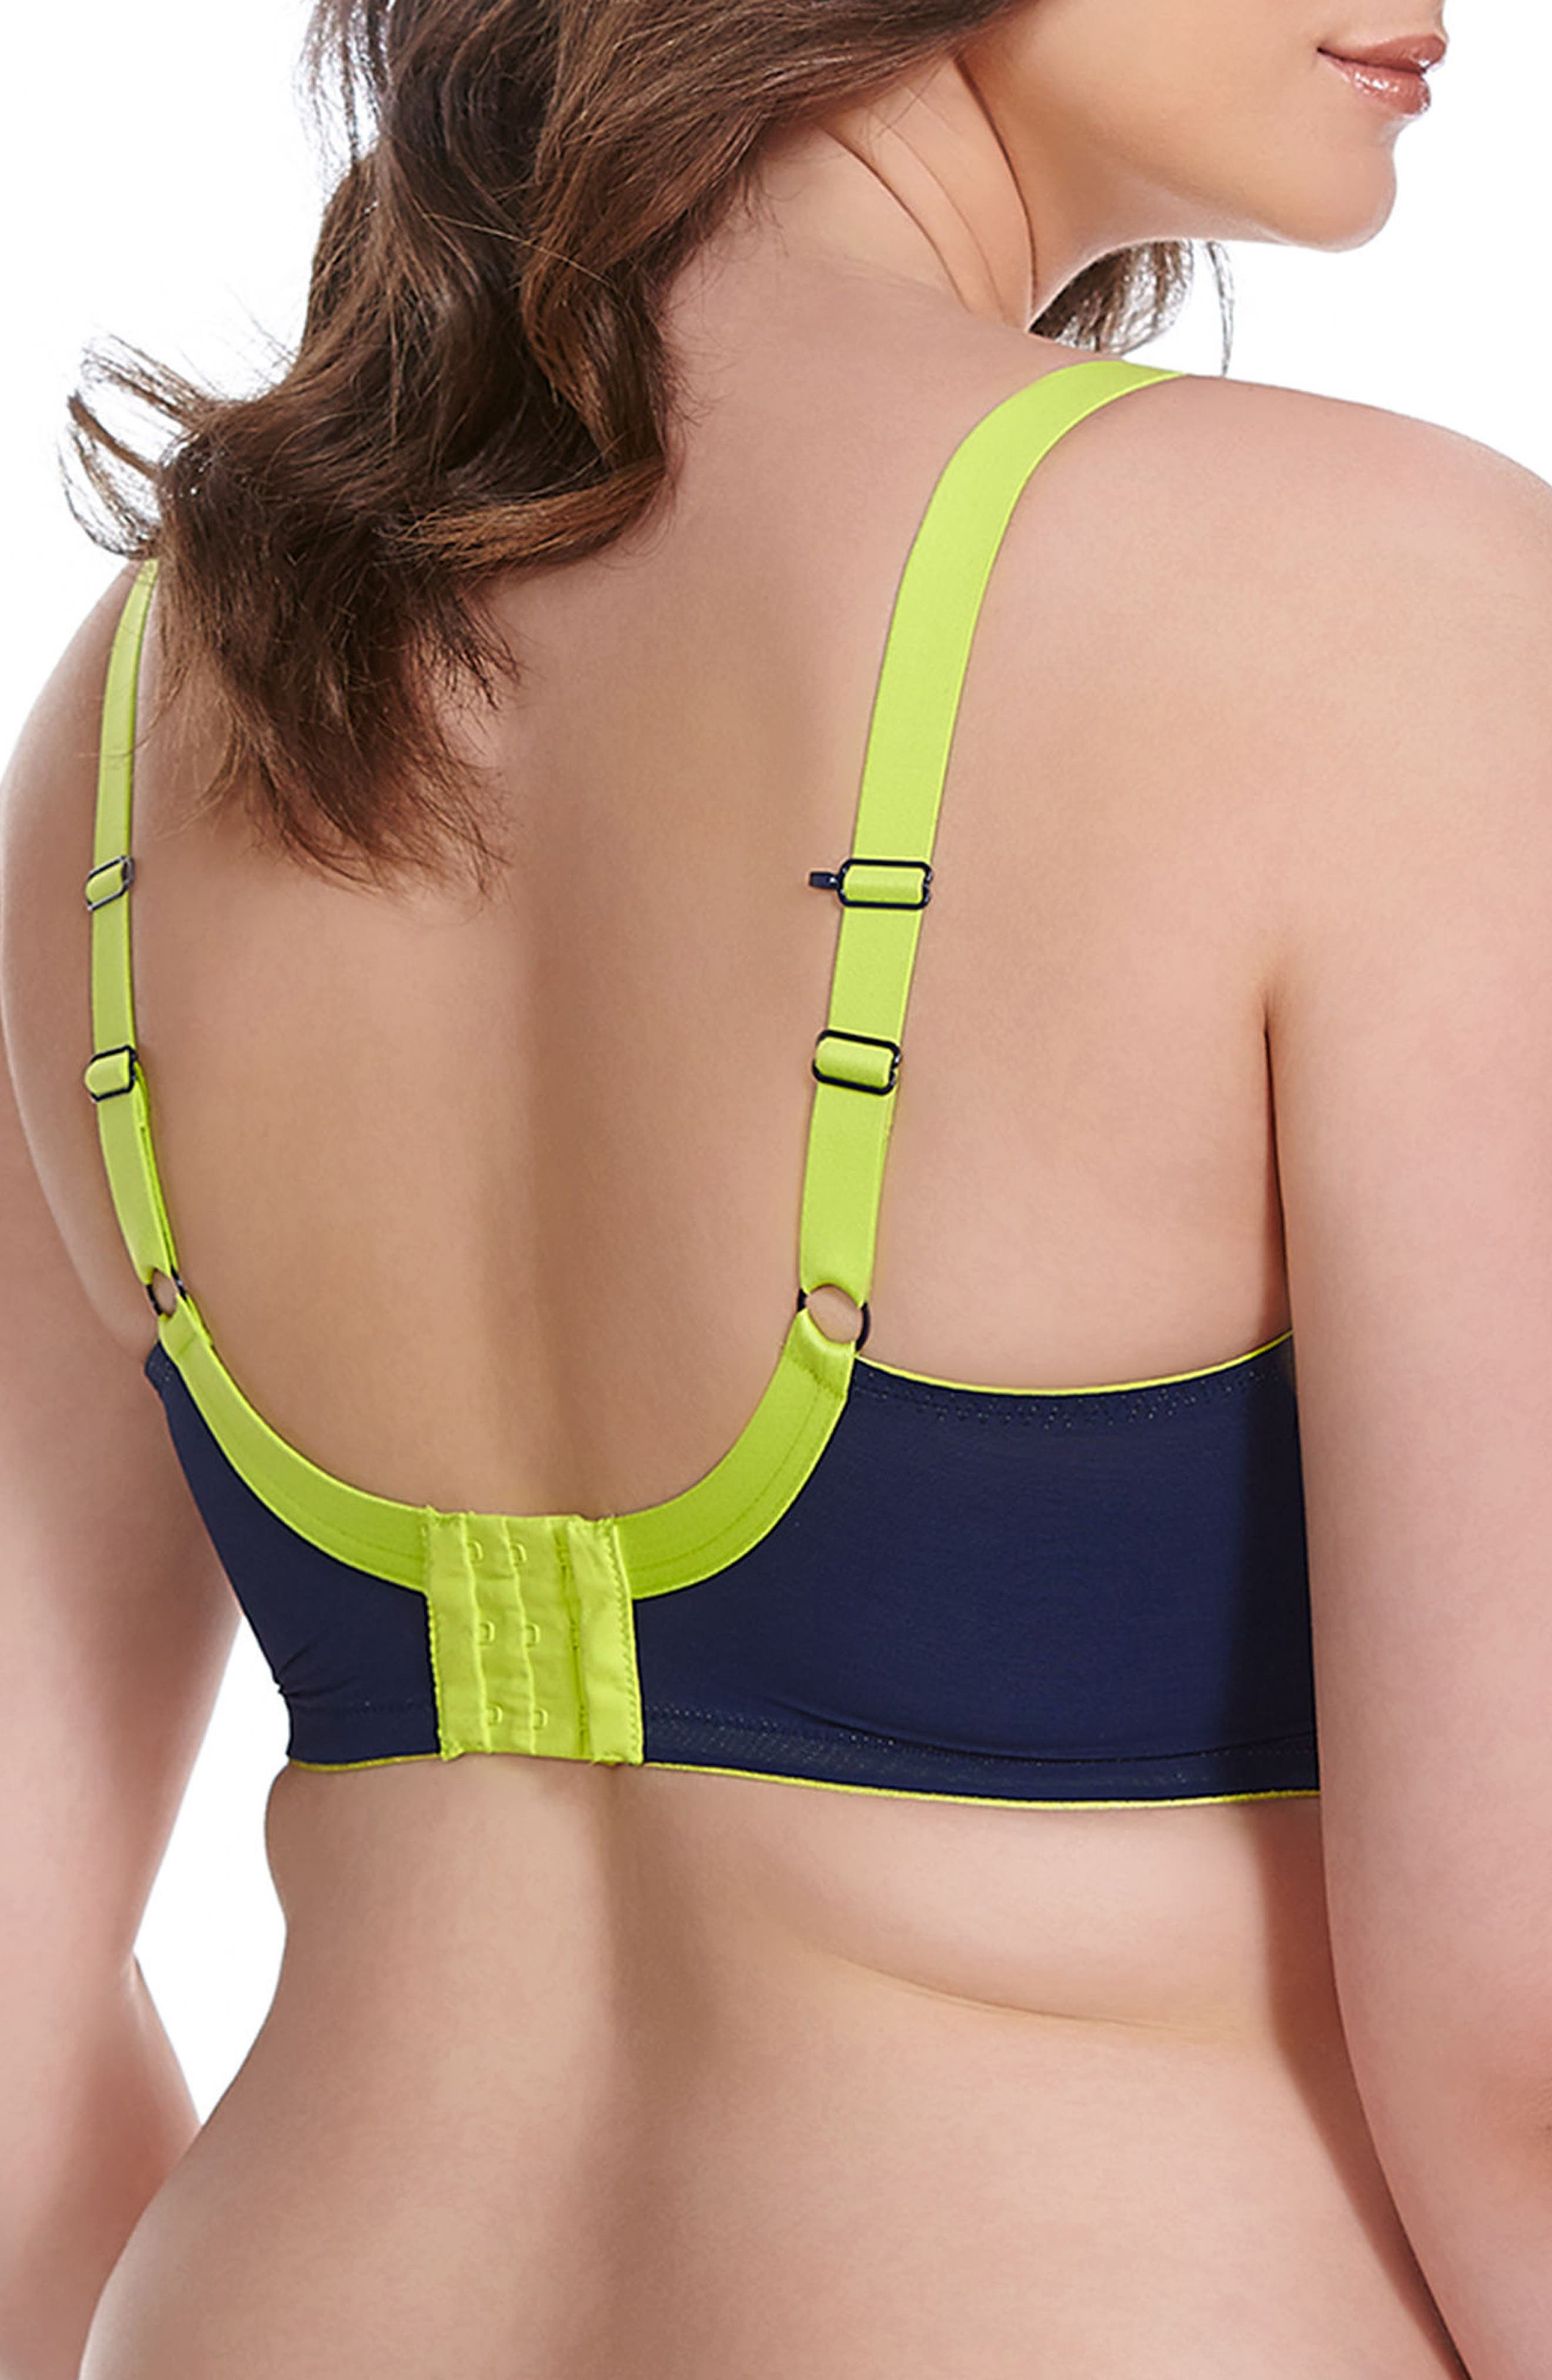 Exercise with complete confidence in a moisture-wicking microfiber sports bra designed with a uniquely constructed underwire that creates flattering separation and minimizes movement. Four-part cups with side support offer exceptional lift and hold. Style Name: Elomi Energise Sports Bra (Plus Size). Style Number: 260999. Available in stores.